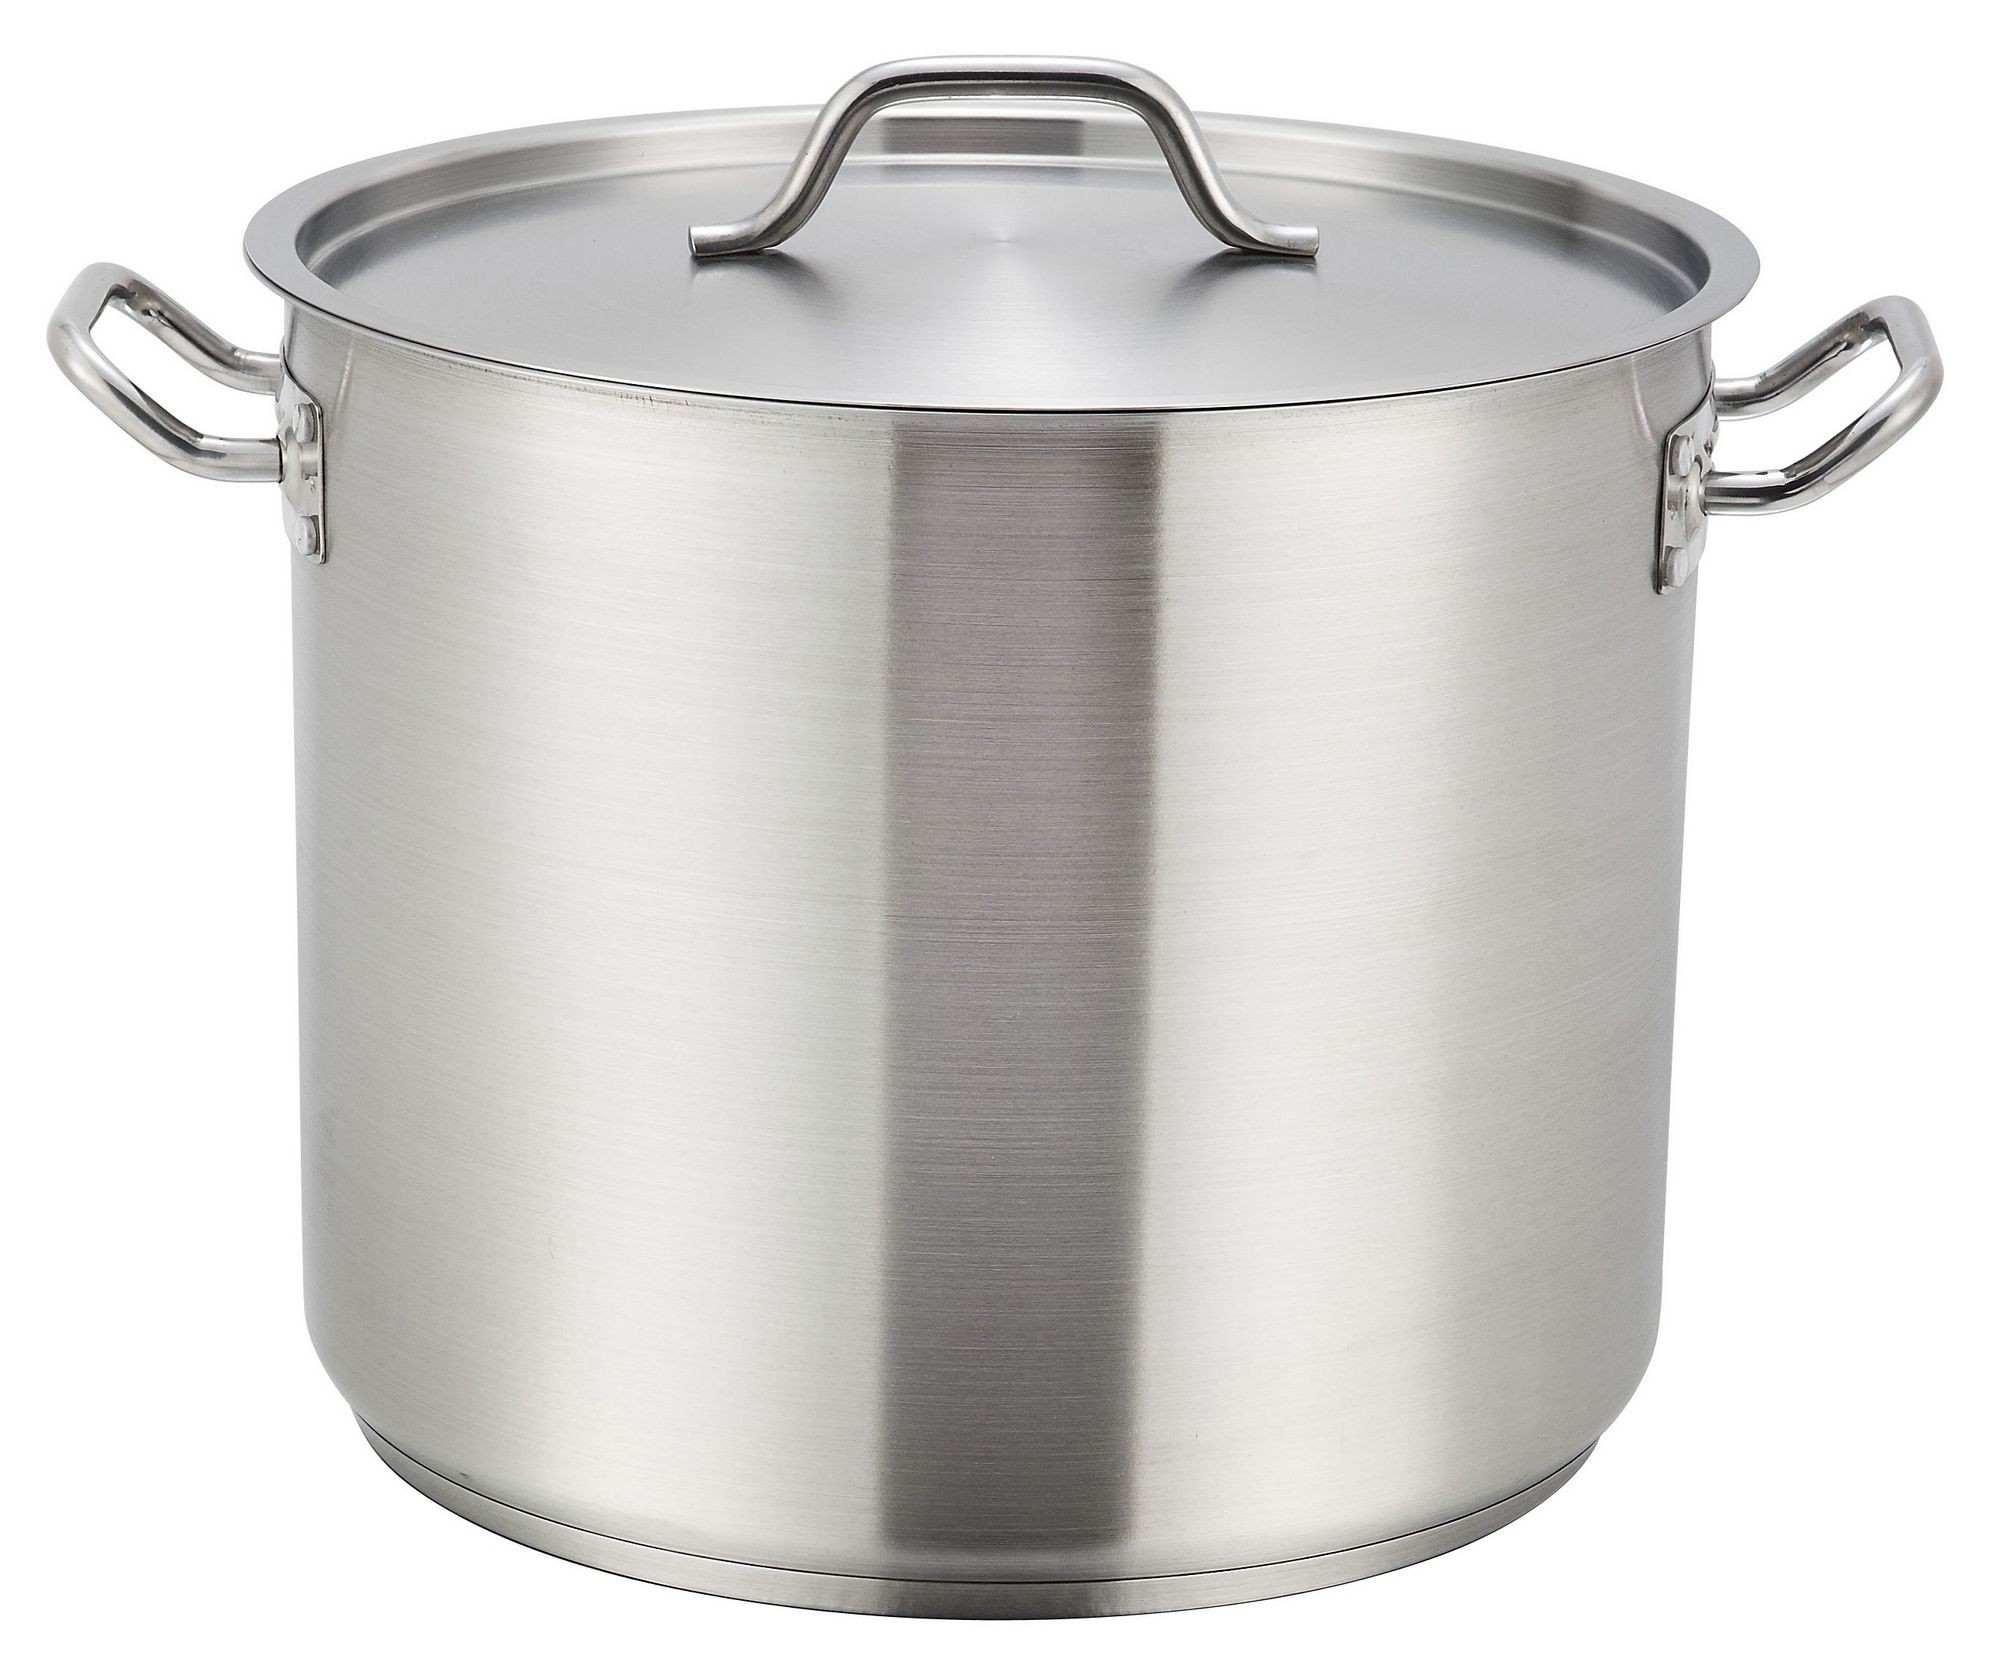 Stainless Steel 60-Qt Stock Pot